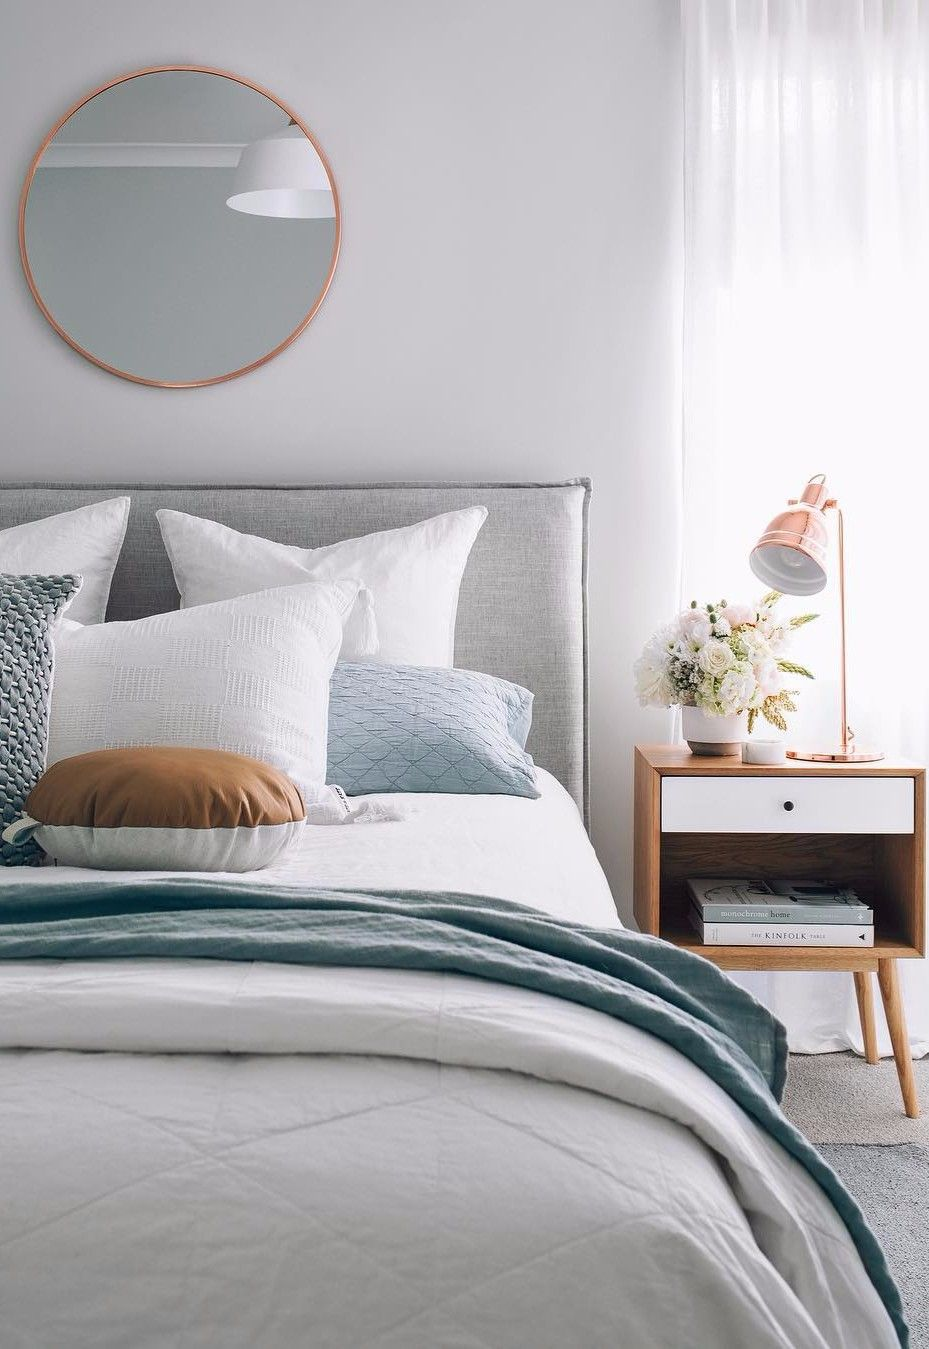 Home Decor Ideas Or How To Design Your Bedroom Bedroom Interior Design Your Bedroom Modern Bedroom Design Interior design your bedroom